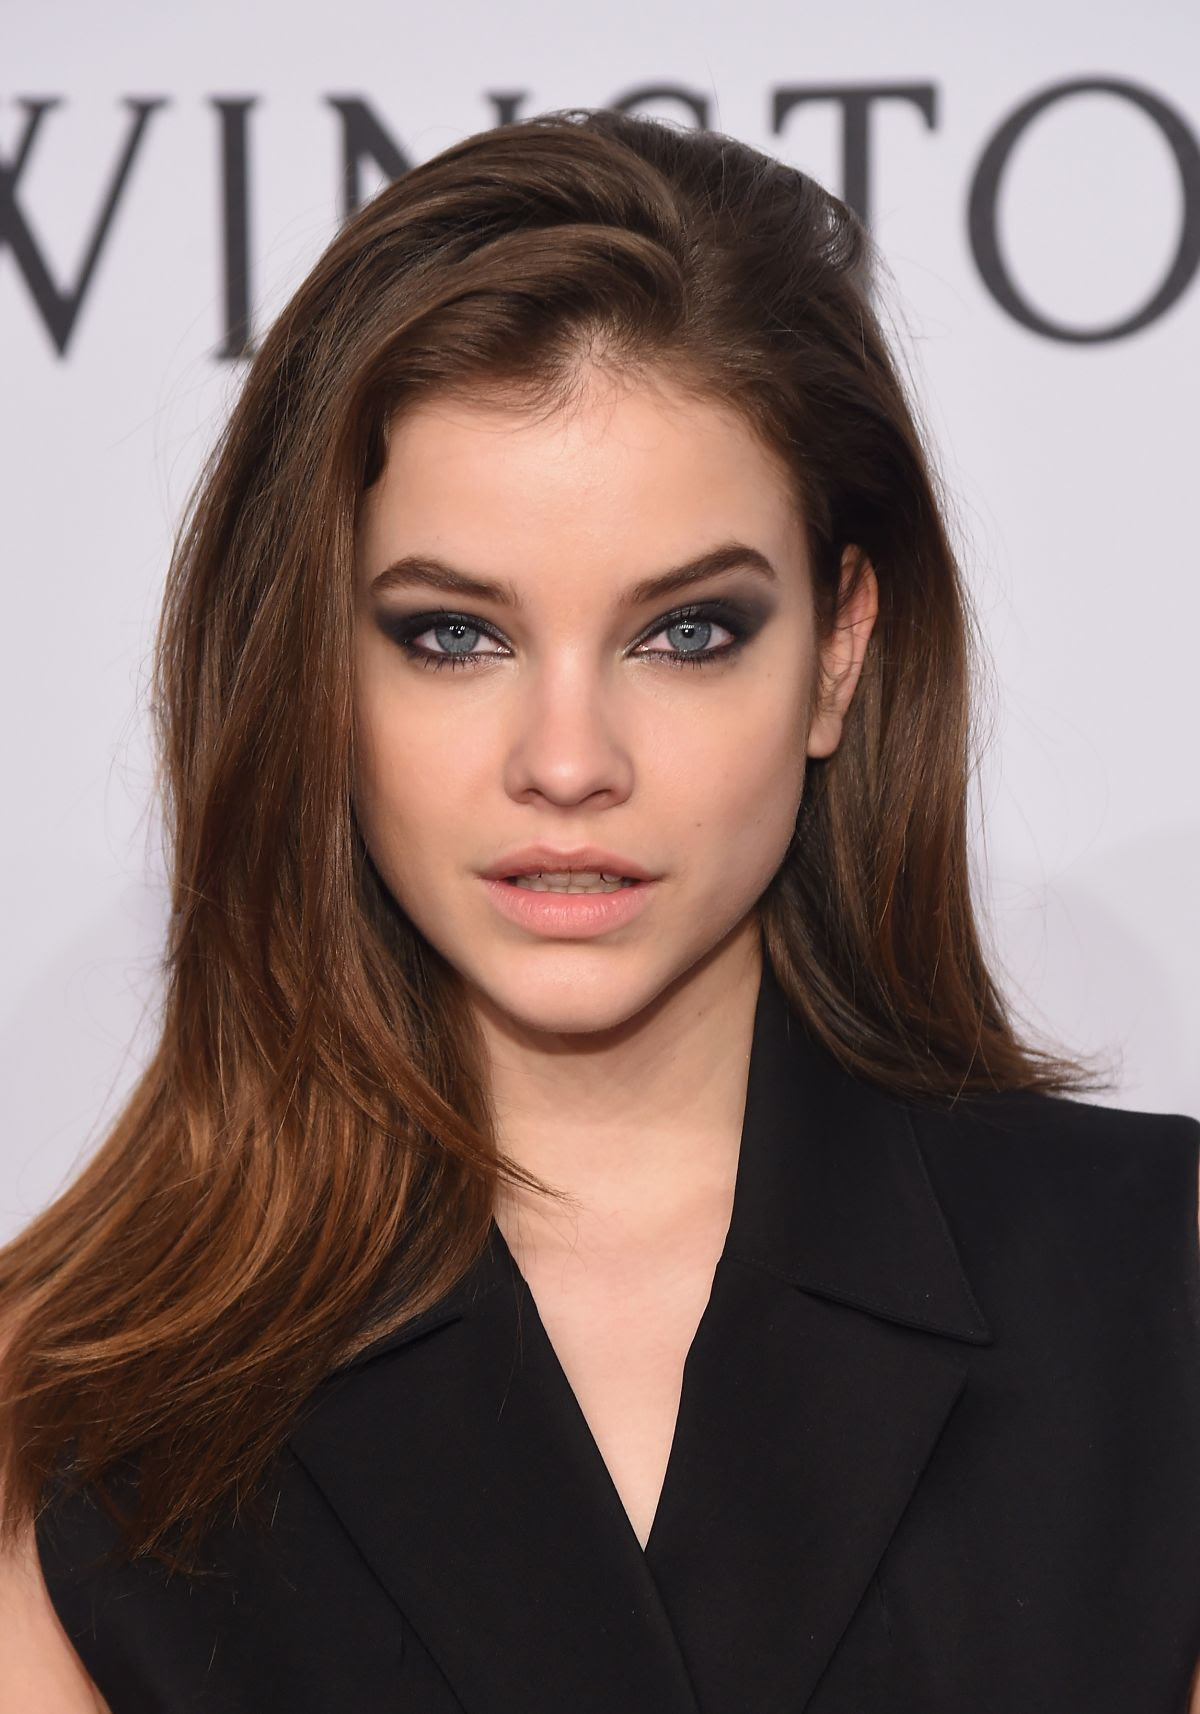 BARBARA PALVIN at 2016 amfar New York Gala 02/10/2016